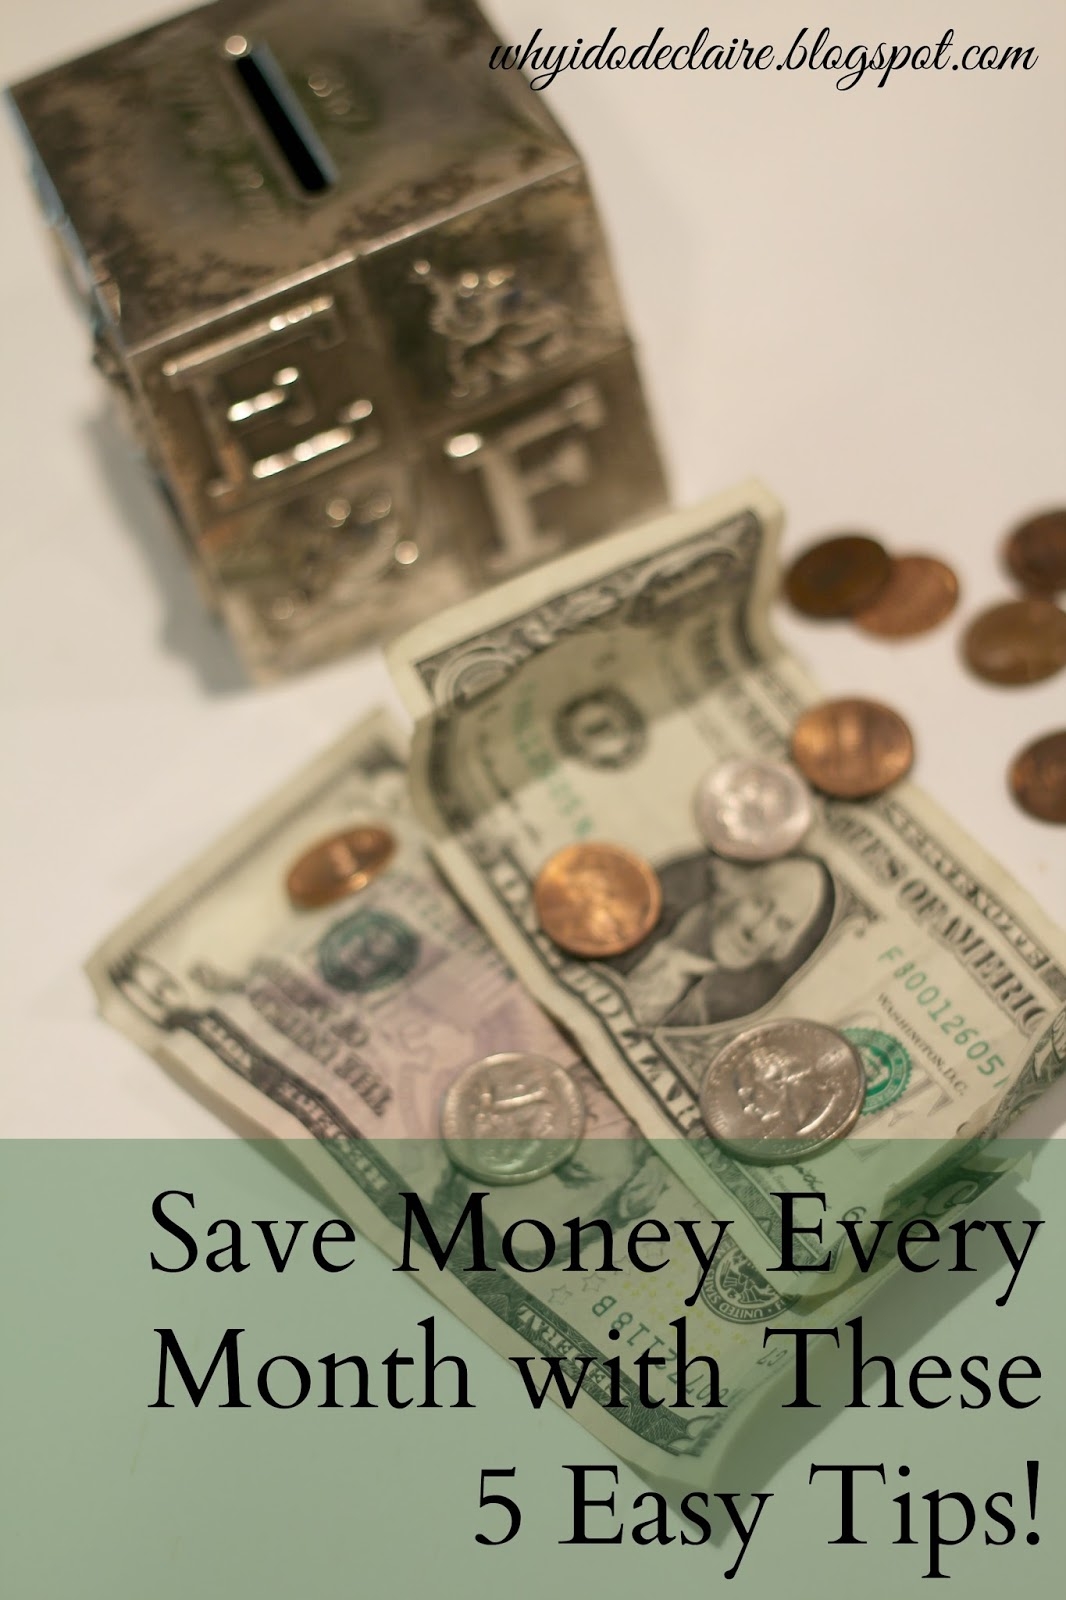 Save Money Every Month with These 5 Easy Tips, Dryel, saving money grocery shopping, saving money cable and internet, saving money cell phone, saving money dry cleaning, saving money electricity